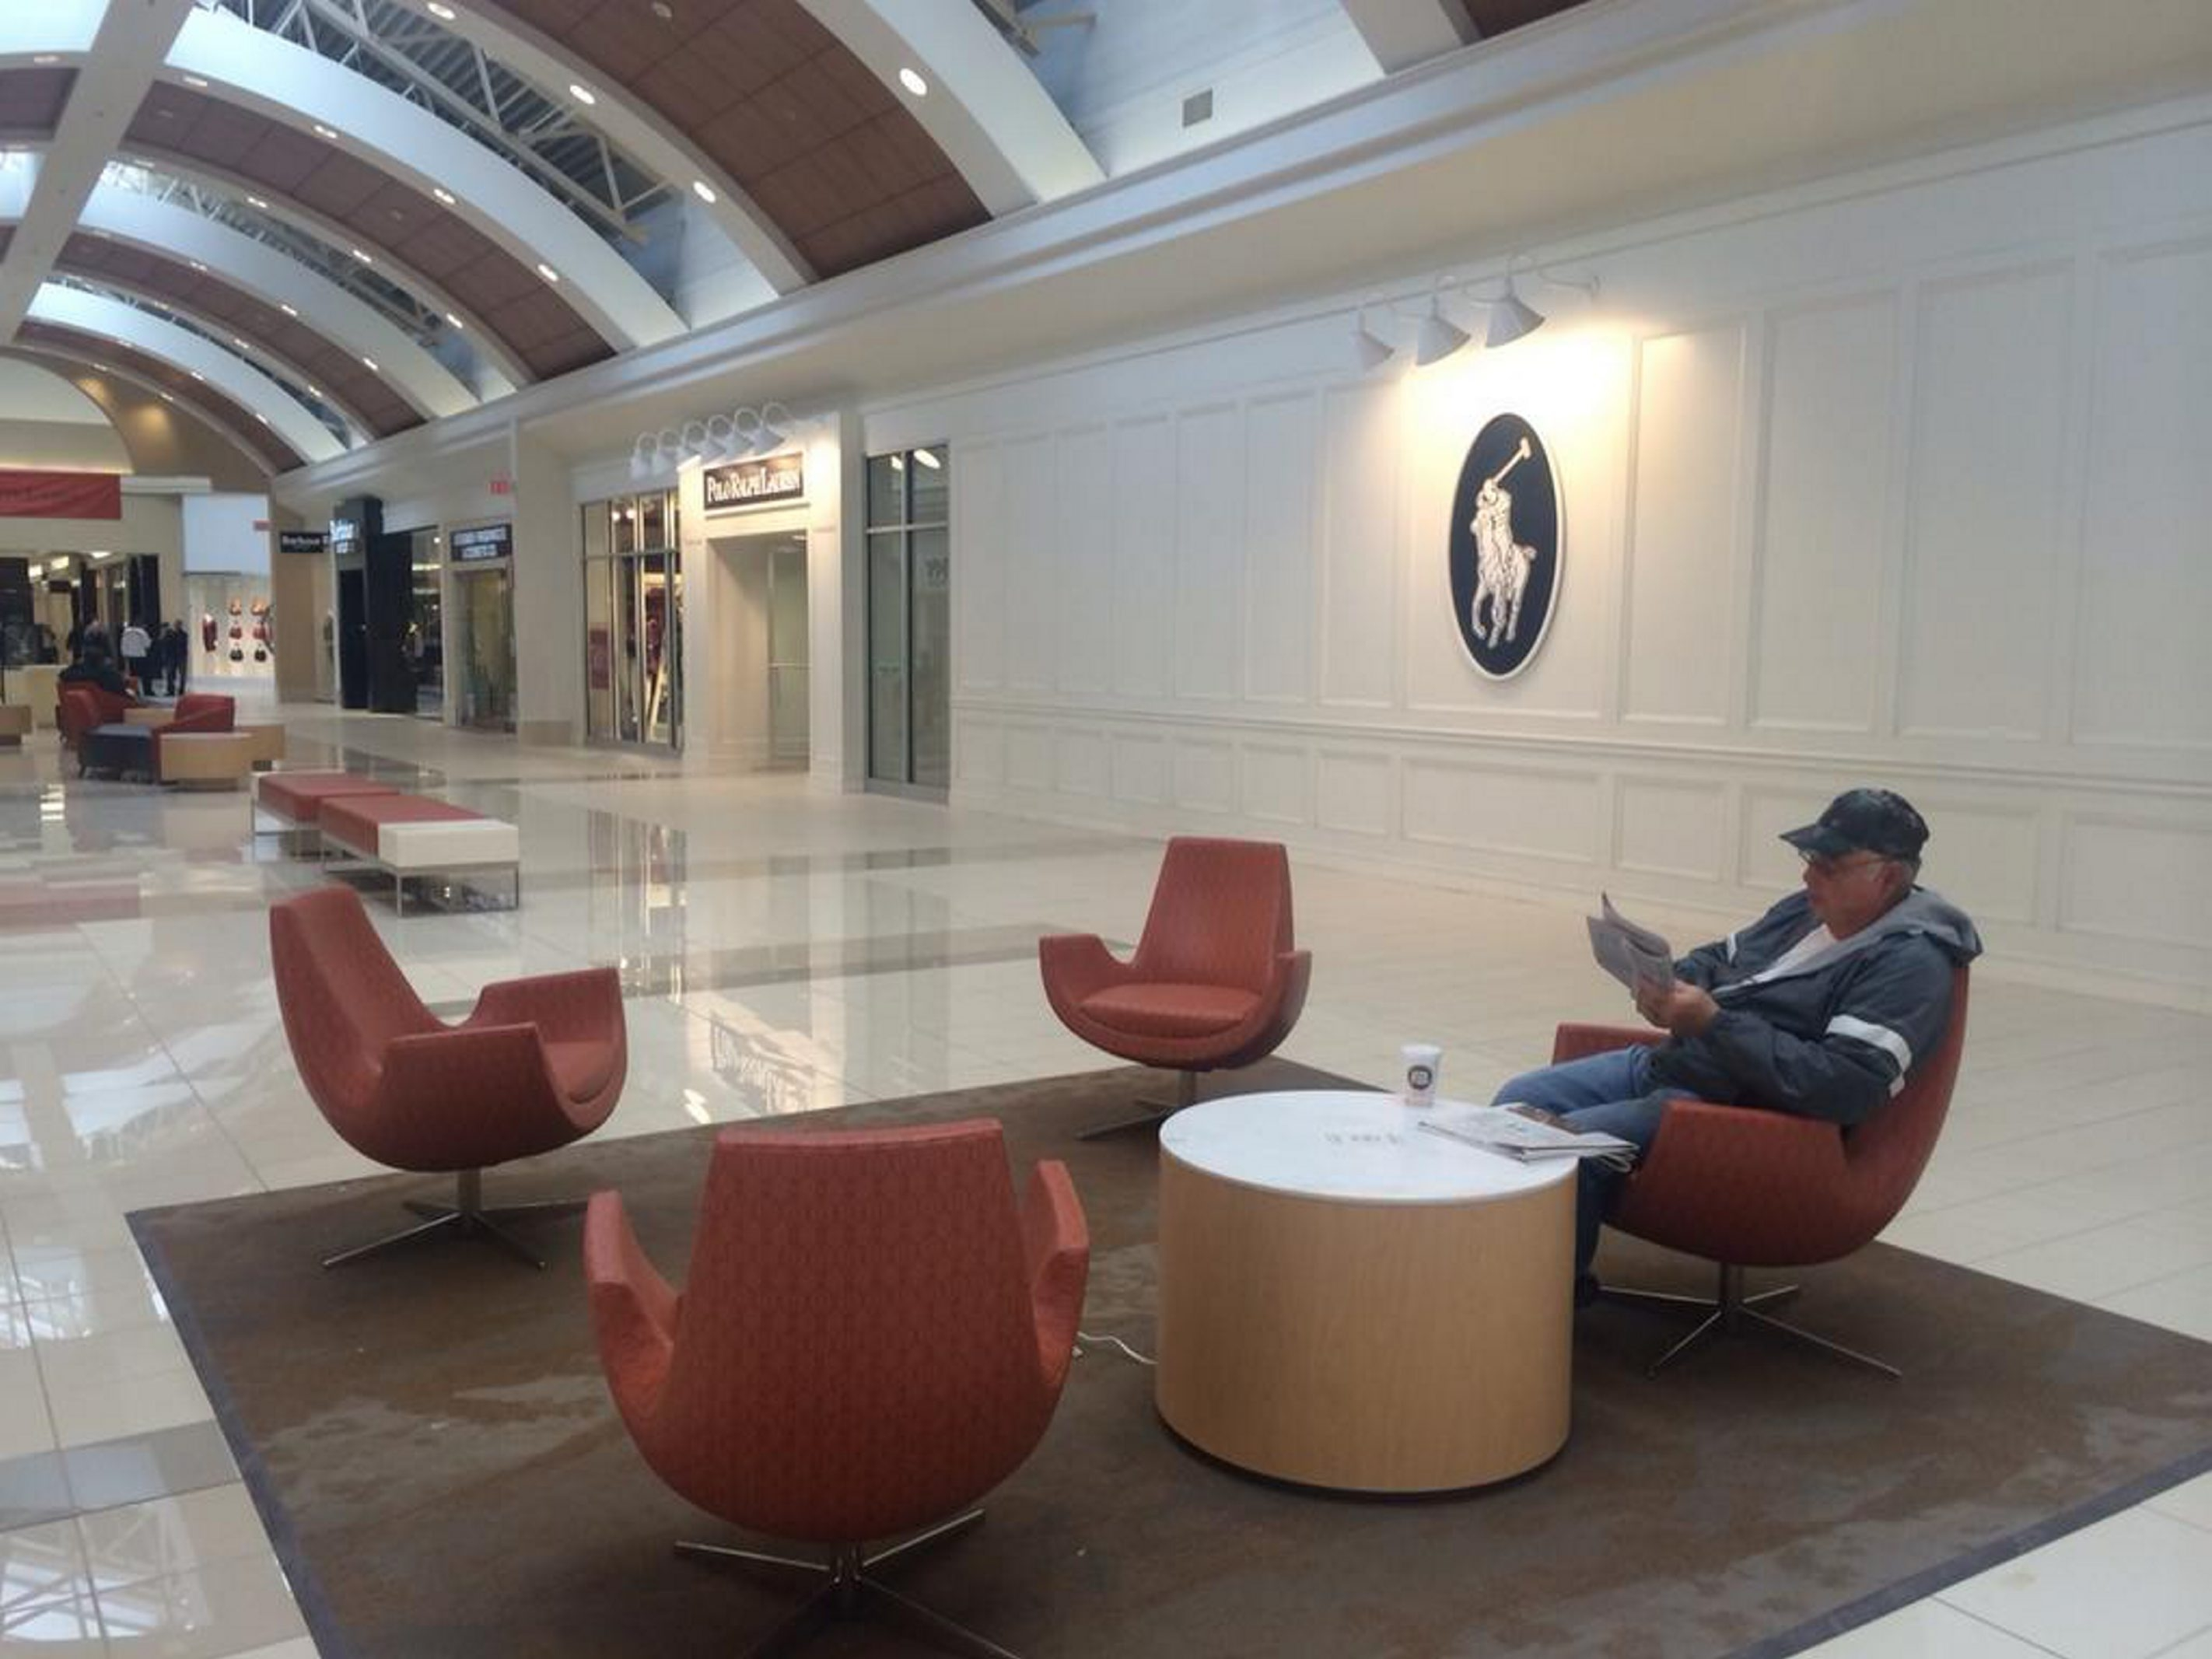 New seating area at expanded Fashion Outlets. (Samantha Christmann)